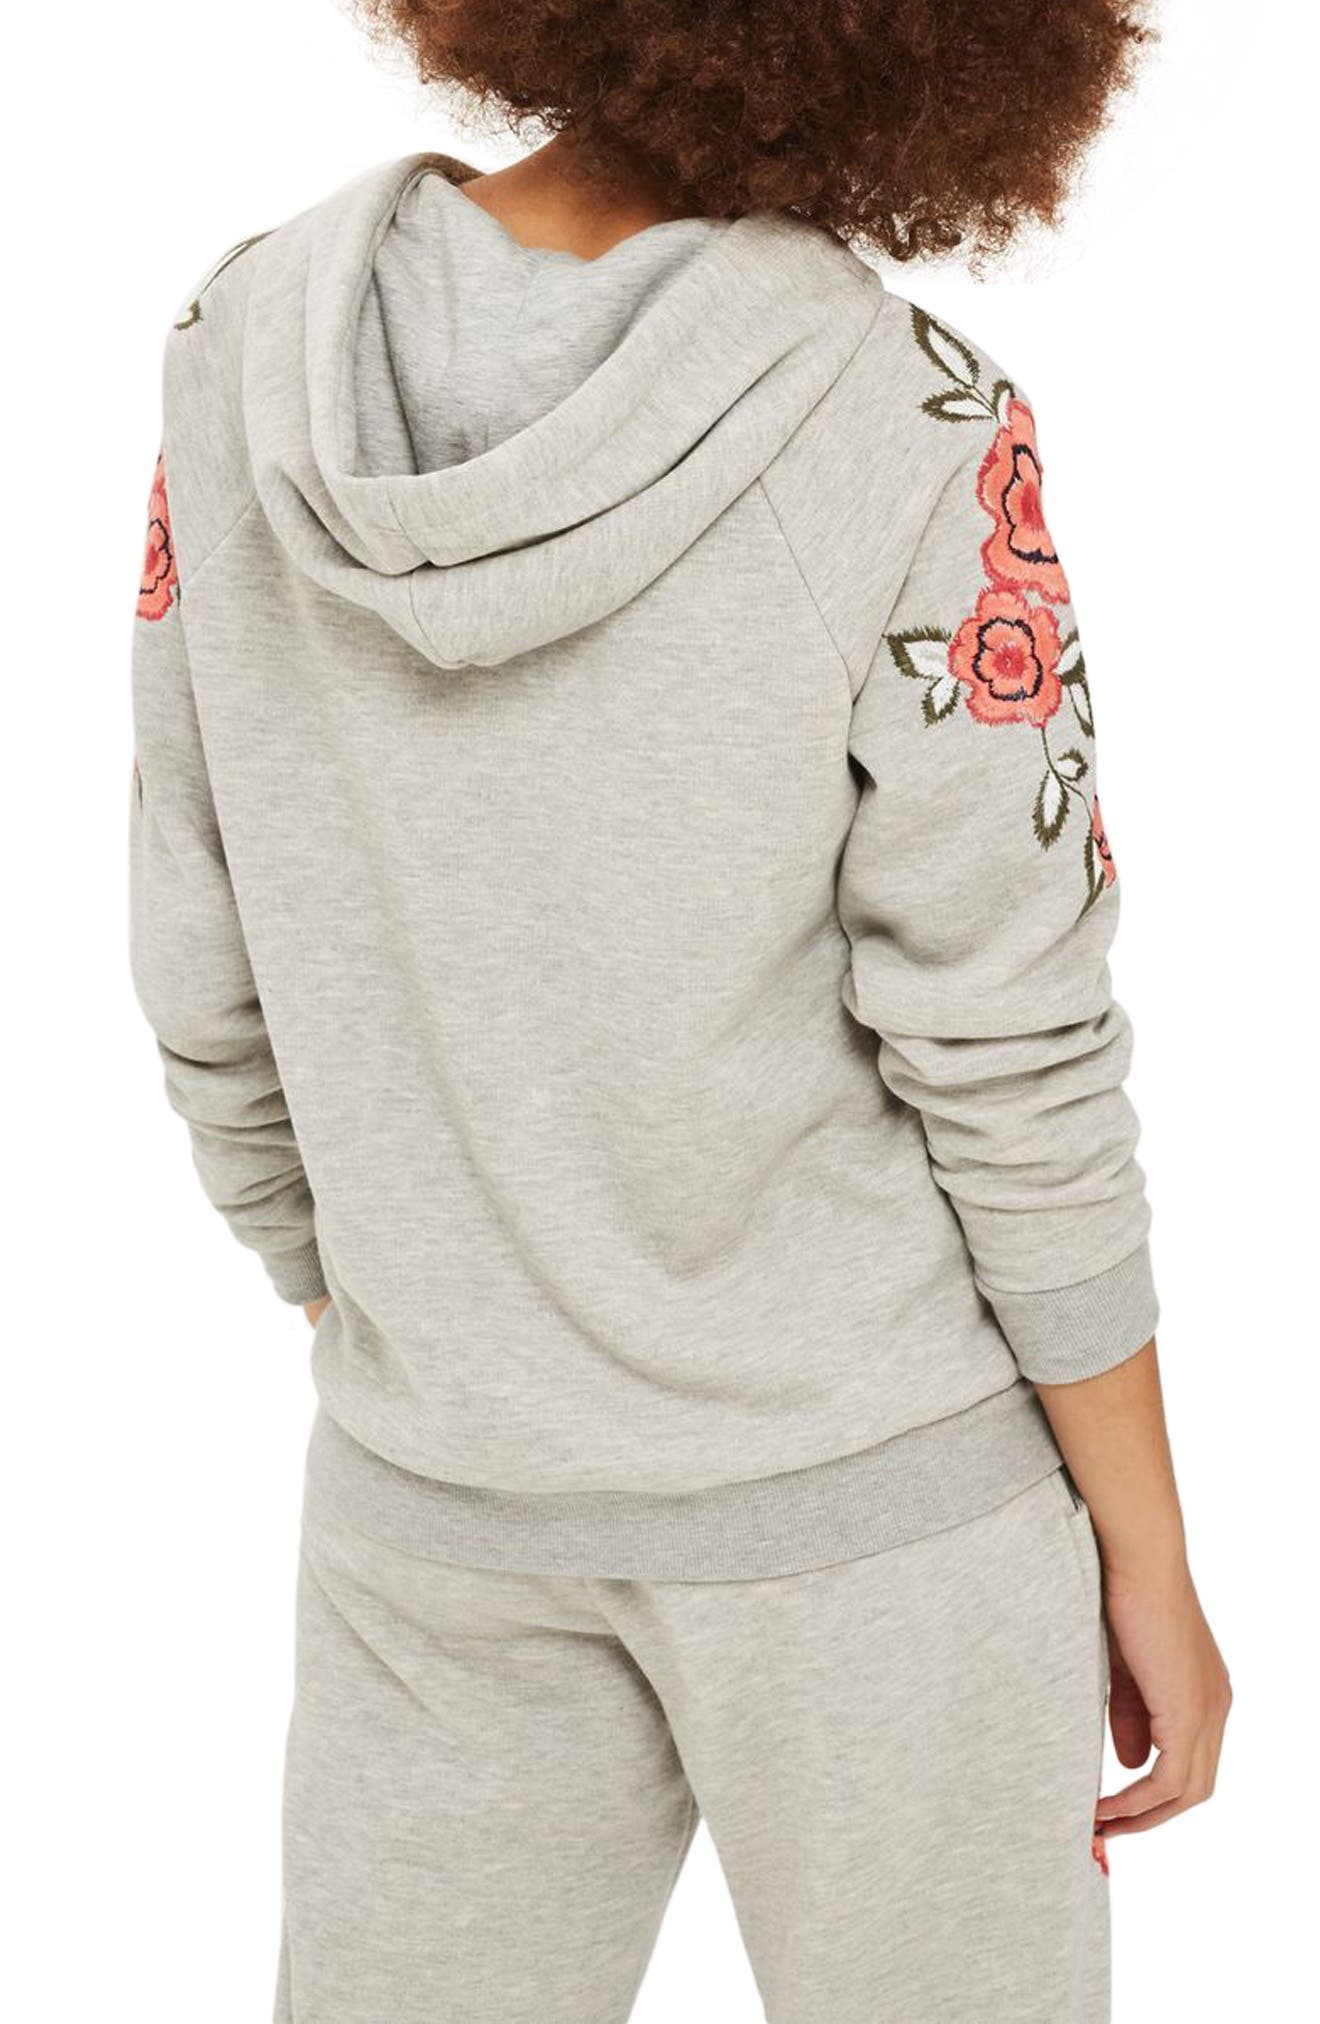 Floral Embroidered Hoodie,                             Alternate thumbnail 2, color,                             Grey Multi